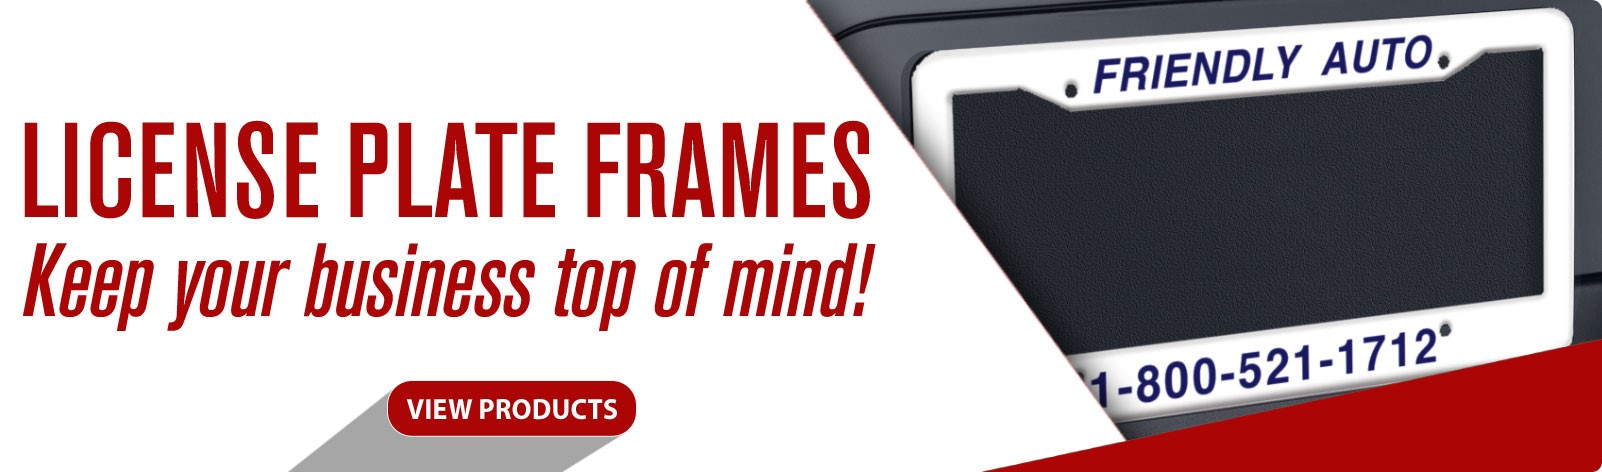 Keep your business top of mind with License Plate Frames!